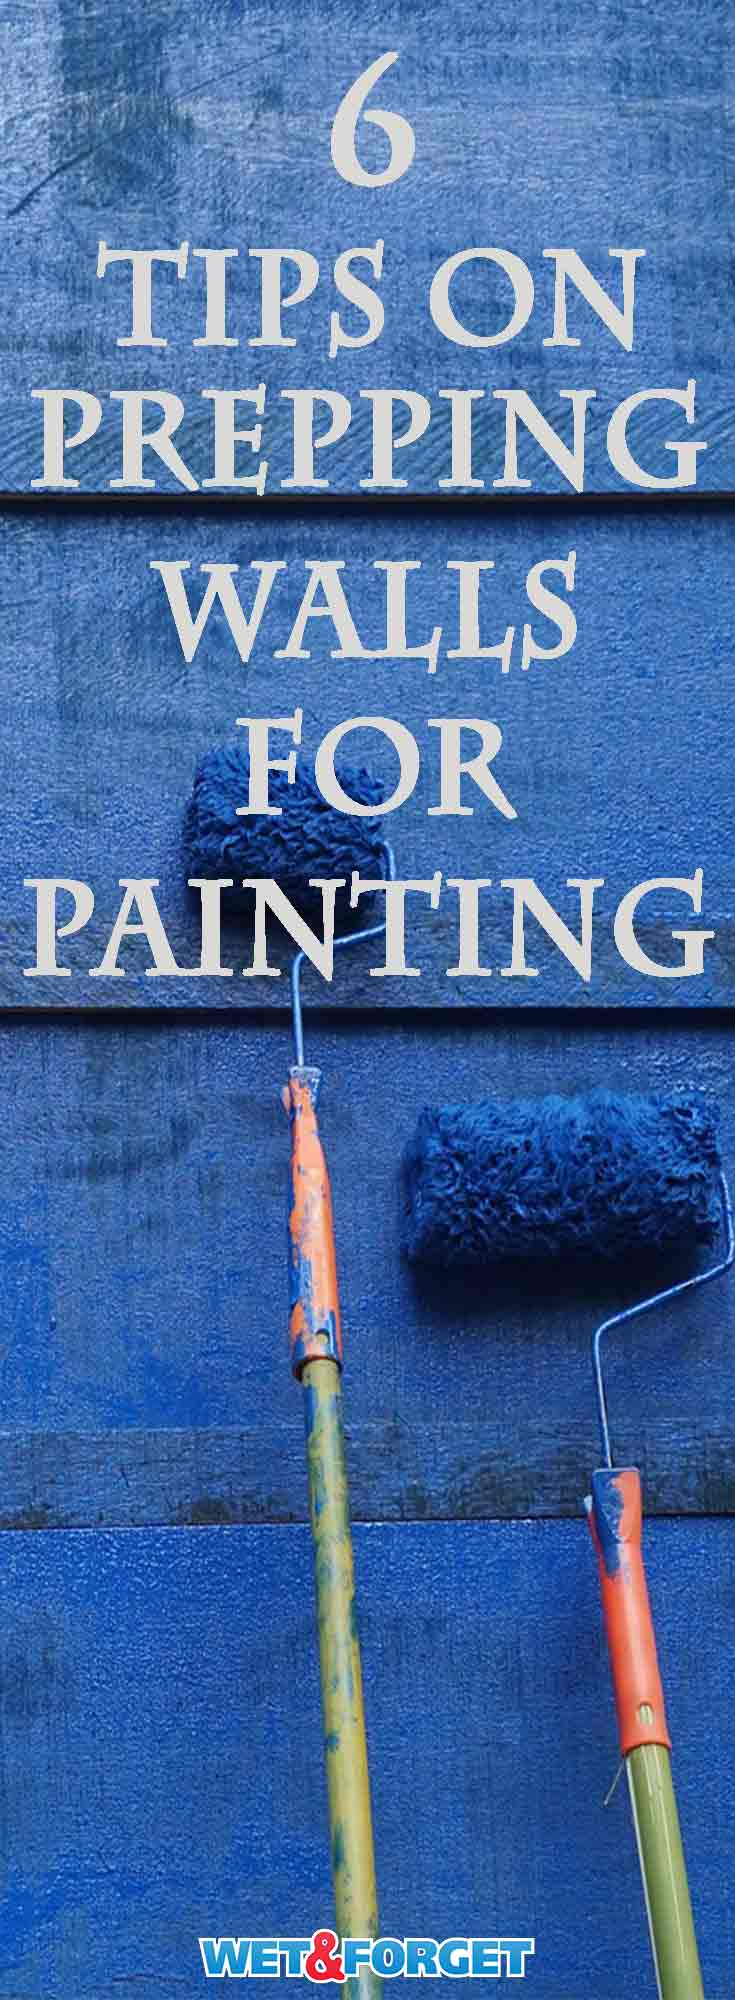 tips for preparing walls for painting